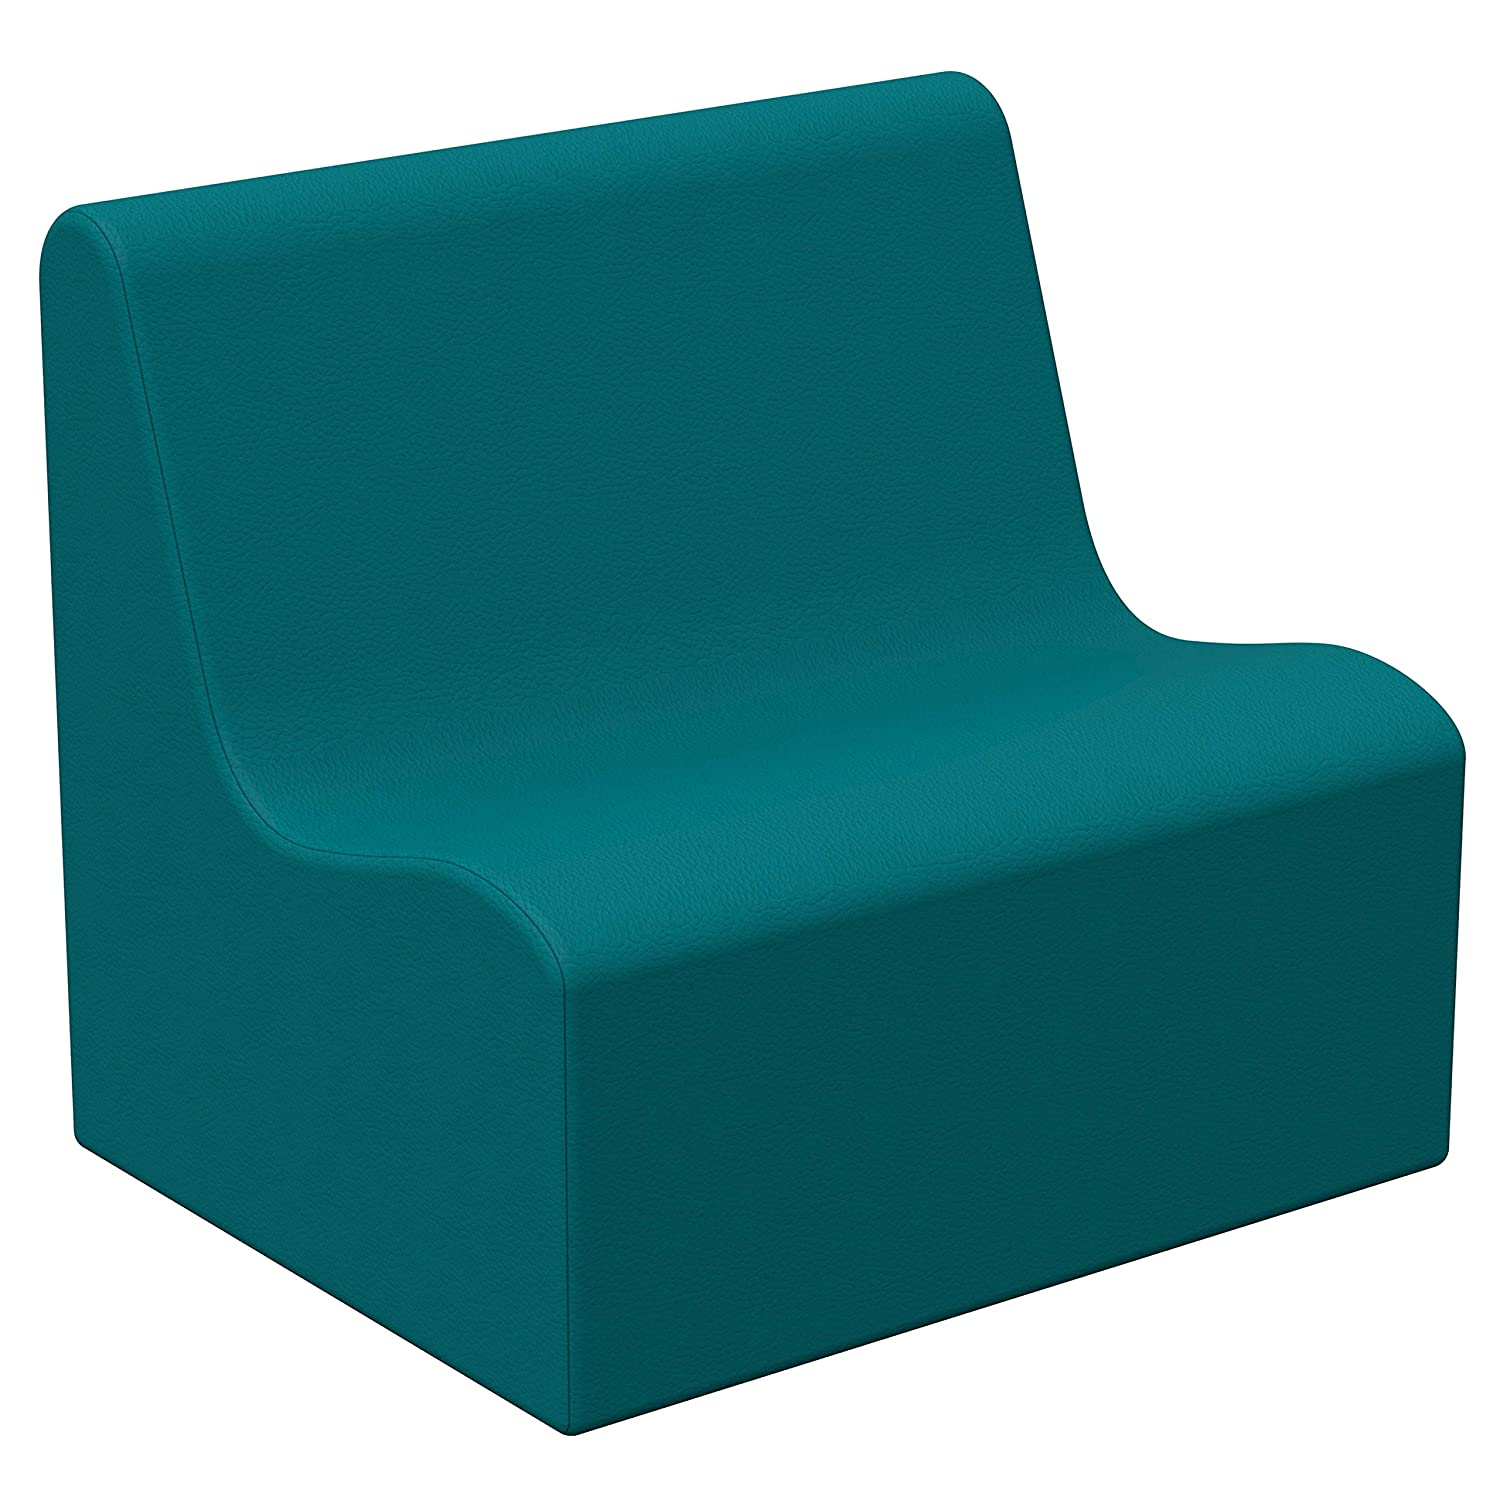 FDP SoftScape Wave Preschool Sofa Seating, Children's Soft Supportive Foam Furniture for Home, Kid's Playroom, Bedroom, Classroom, Waiting Areas - Teal